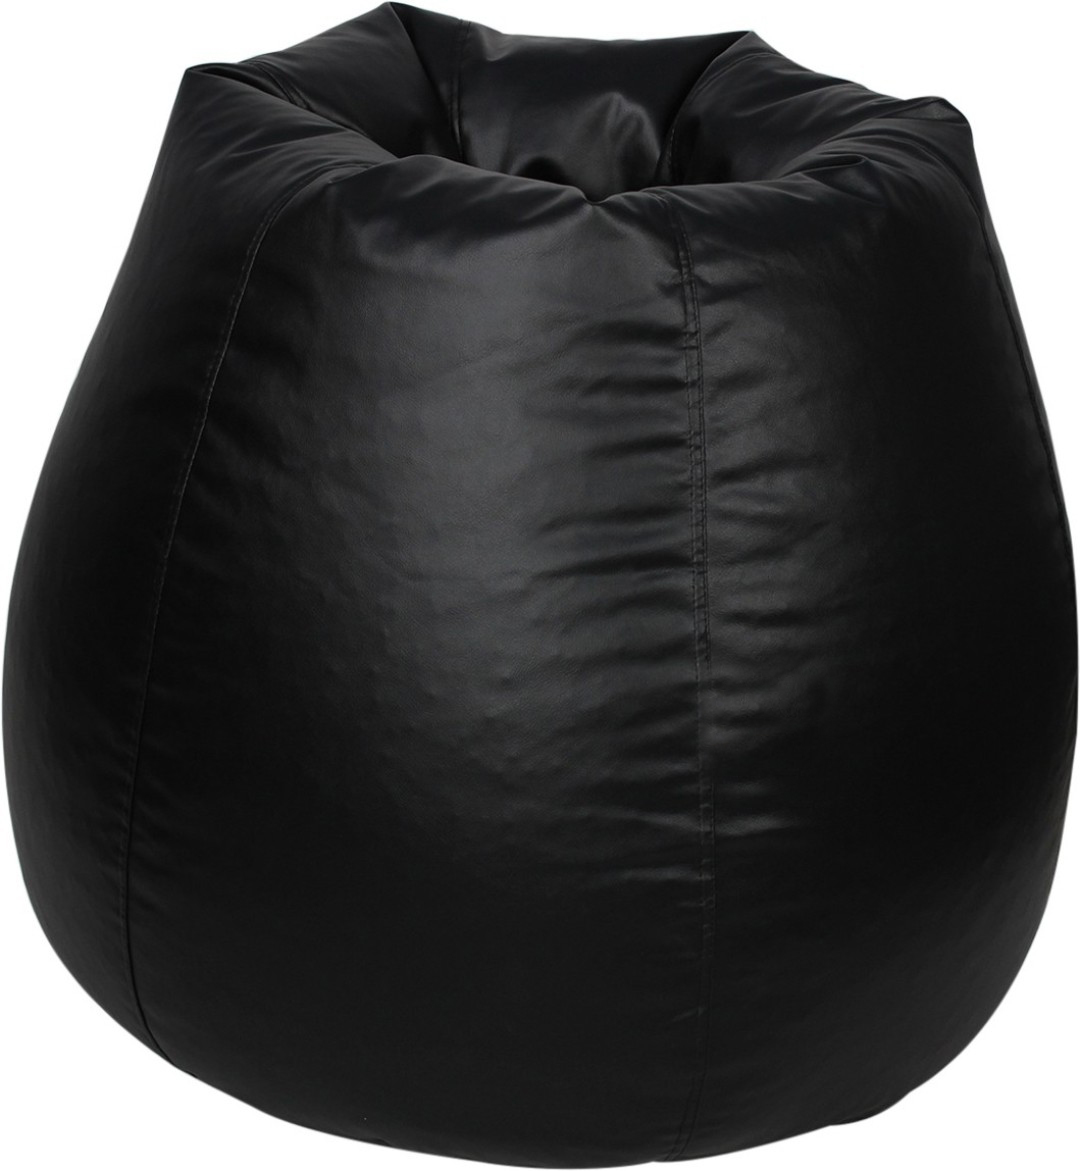 Xxxl Classic Bean Bag - Black (with beans)